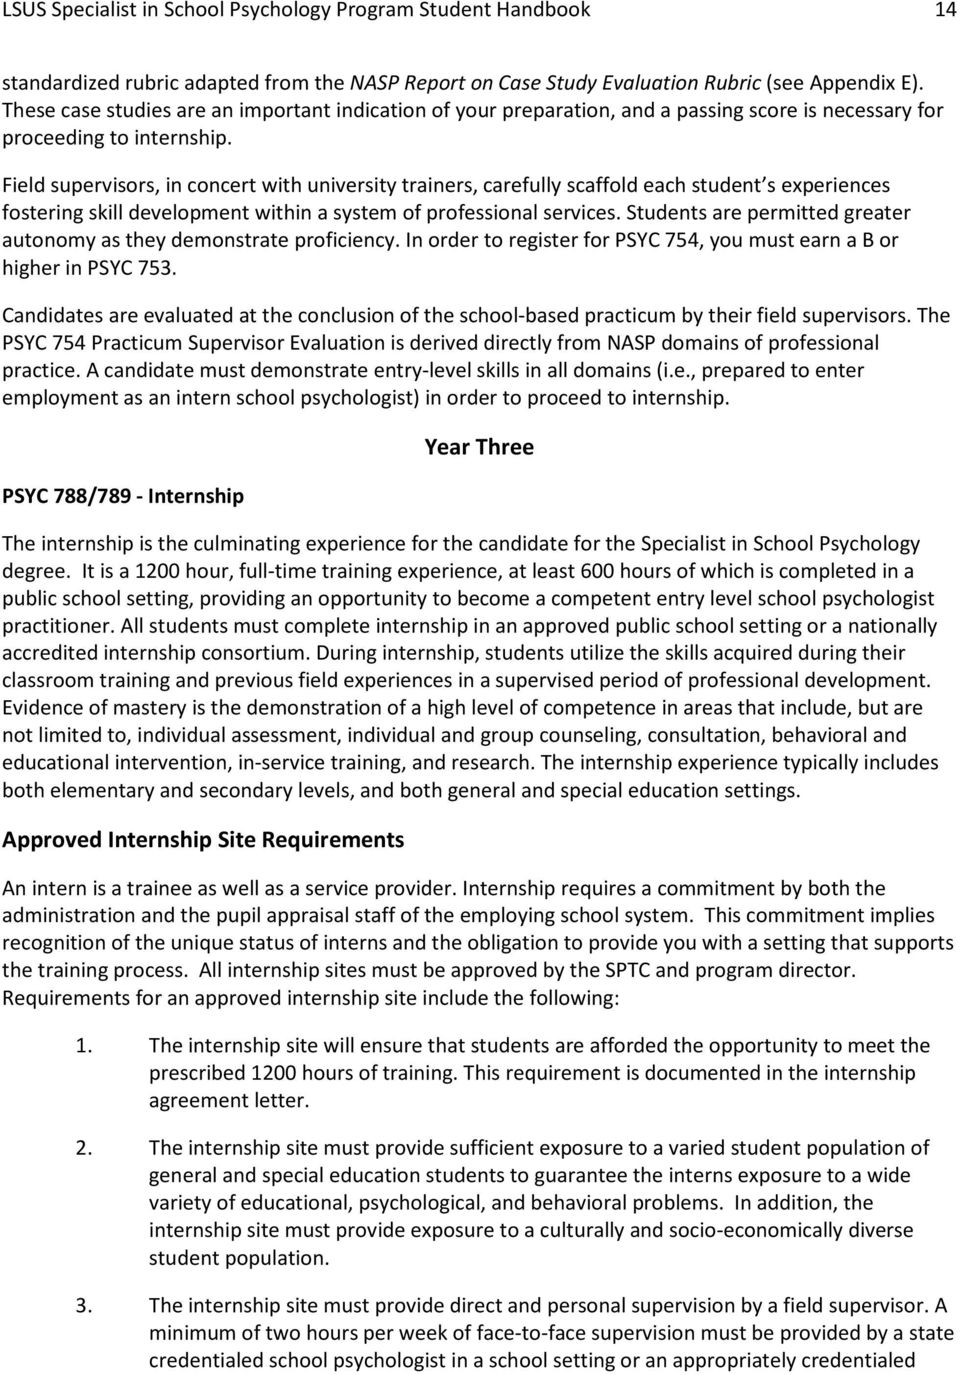 Field supervisors, in concert with university trainers, carefully scaffold each student s experiences fostering skill development within a system of professional services.